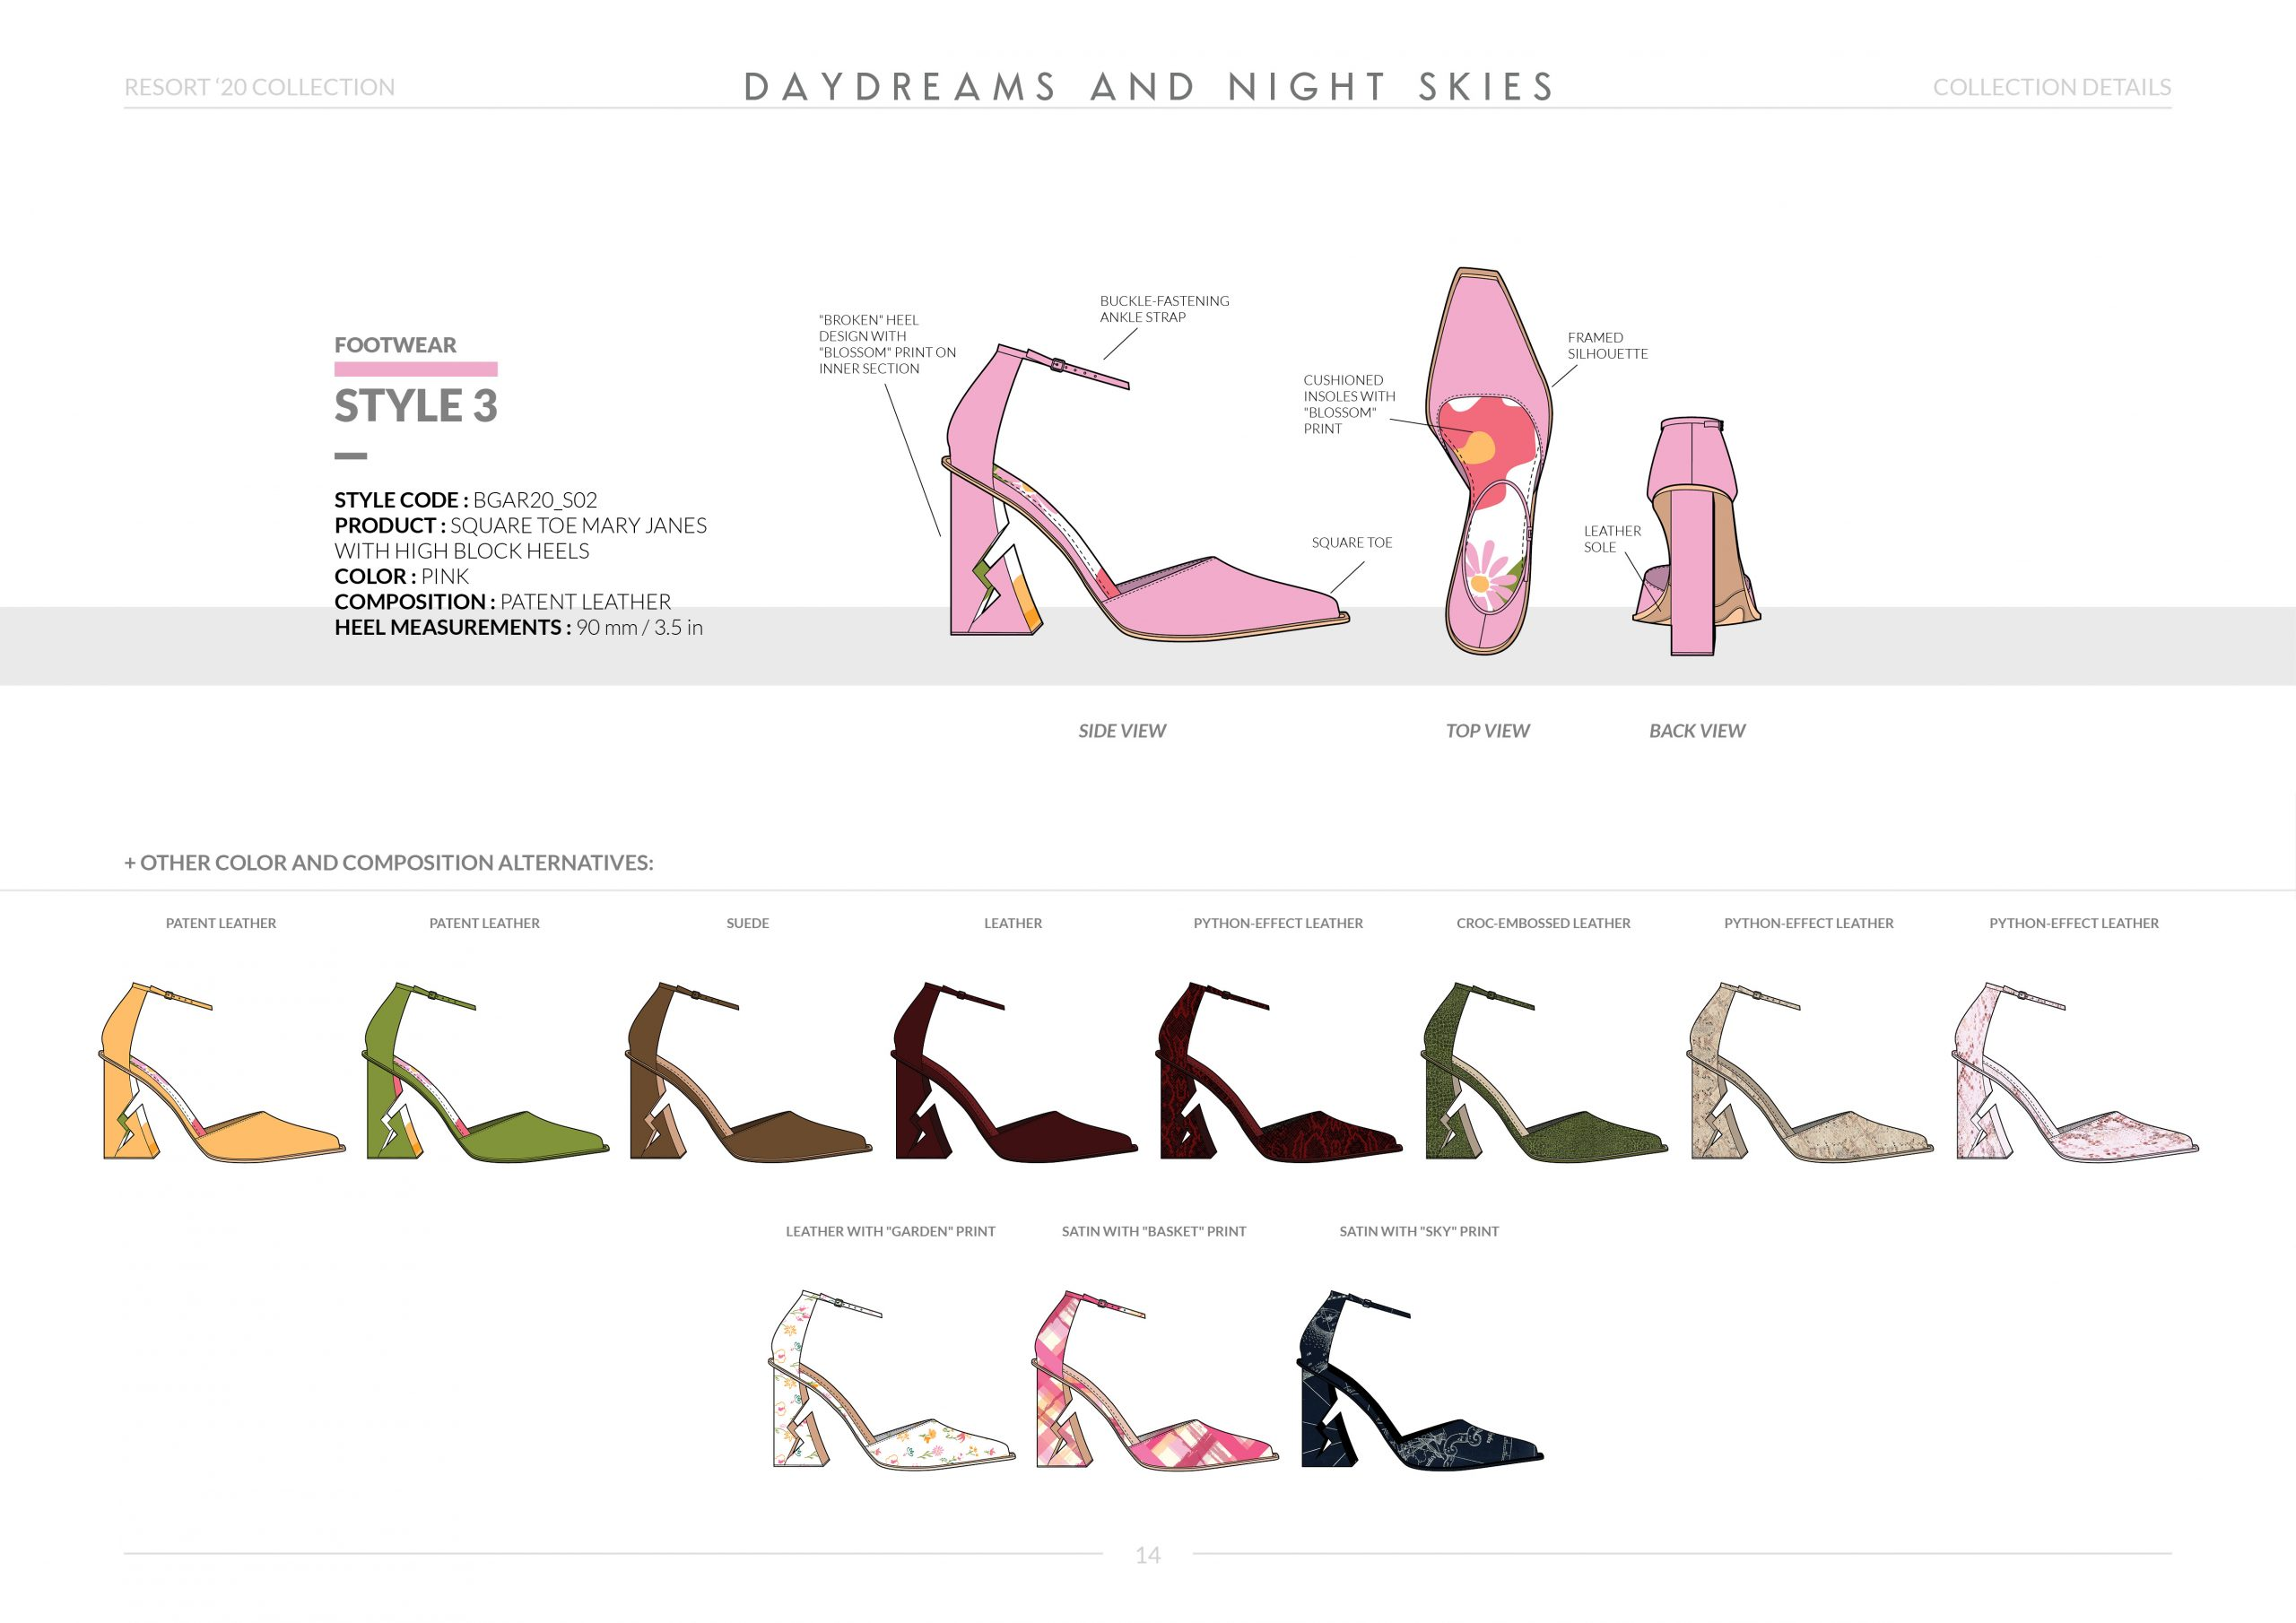 Resort-20 Womens Footwear Collection Details: Style 3